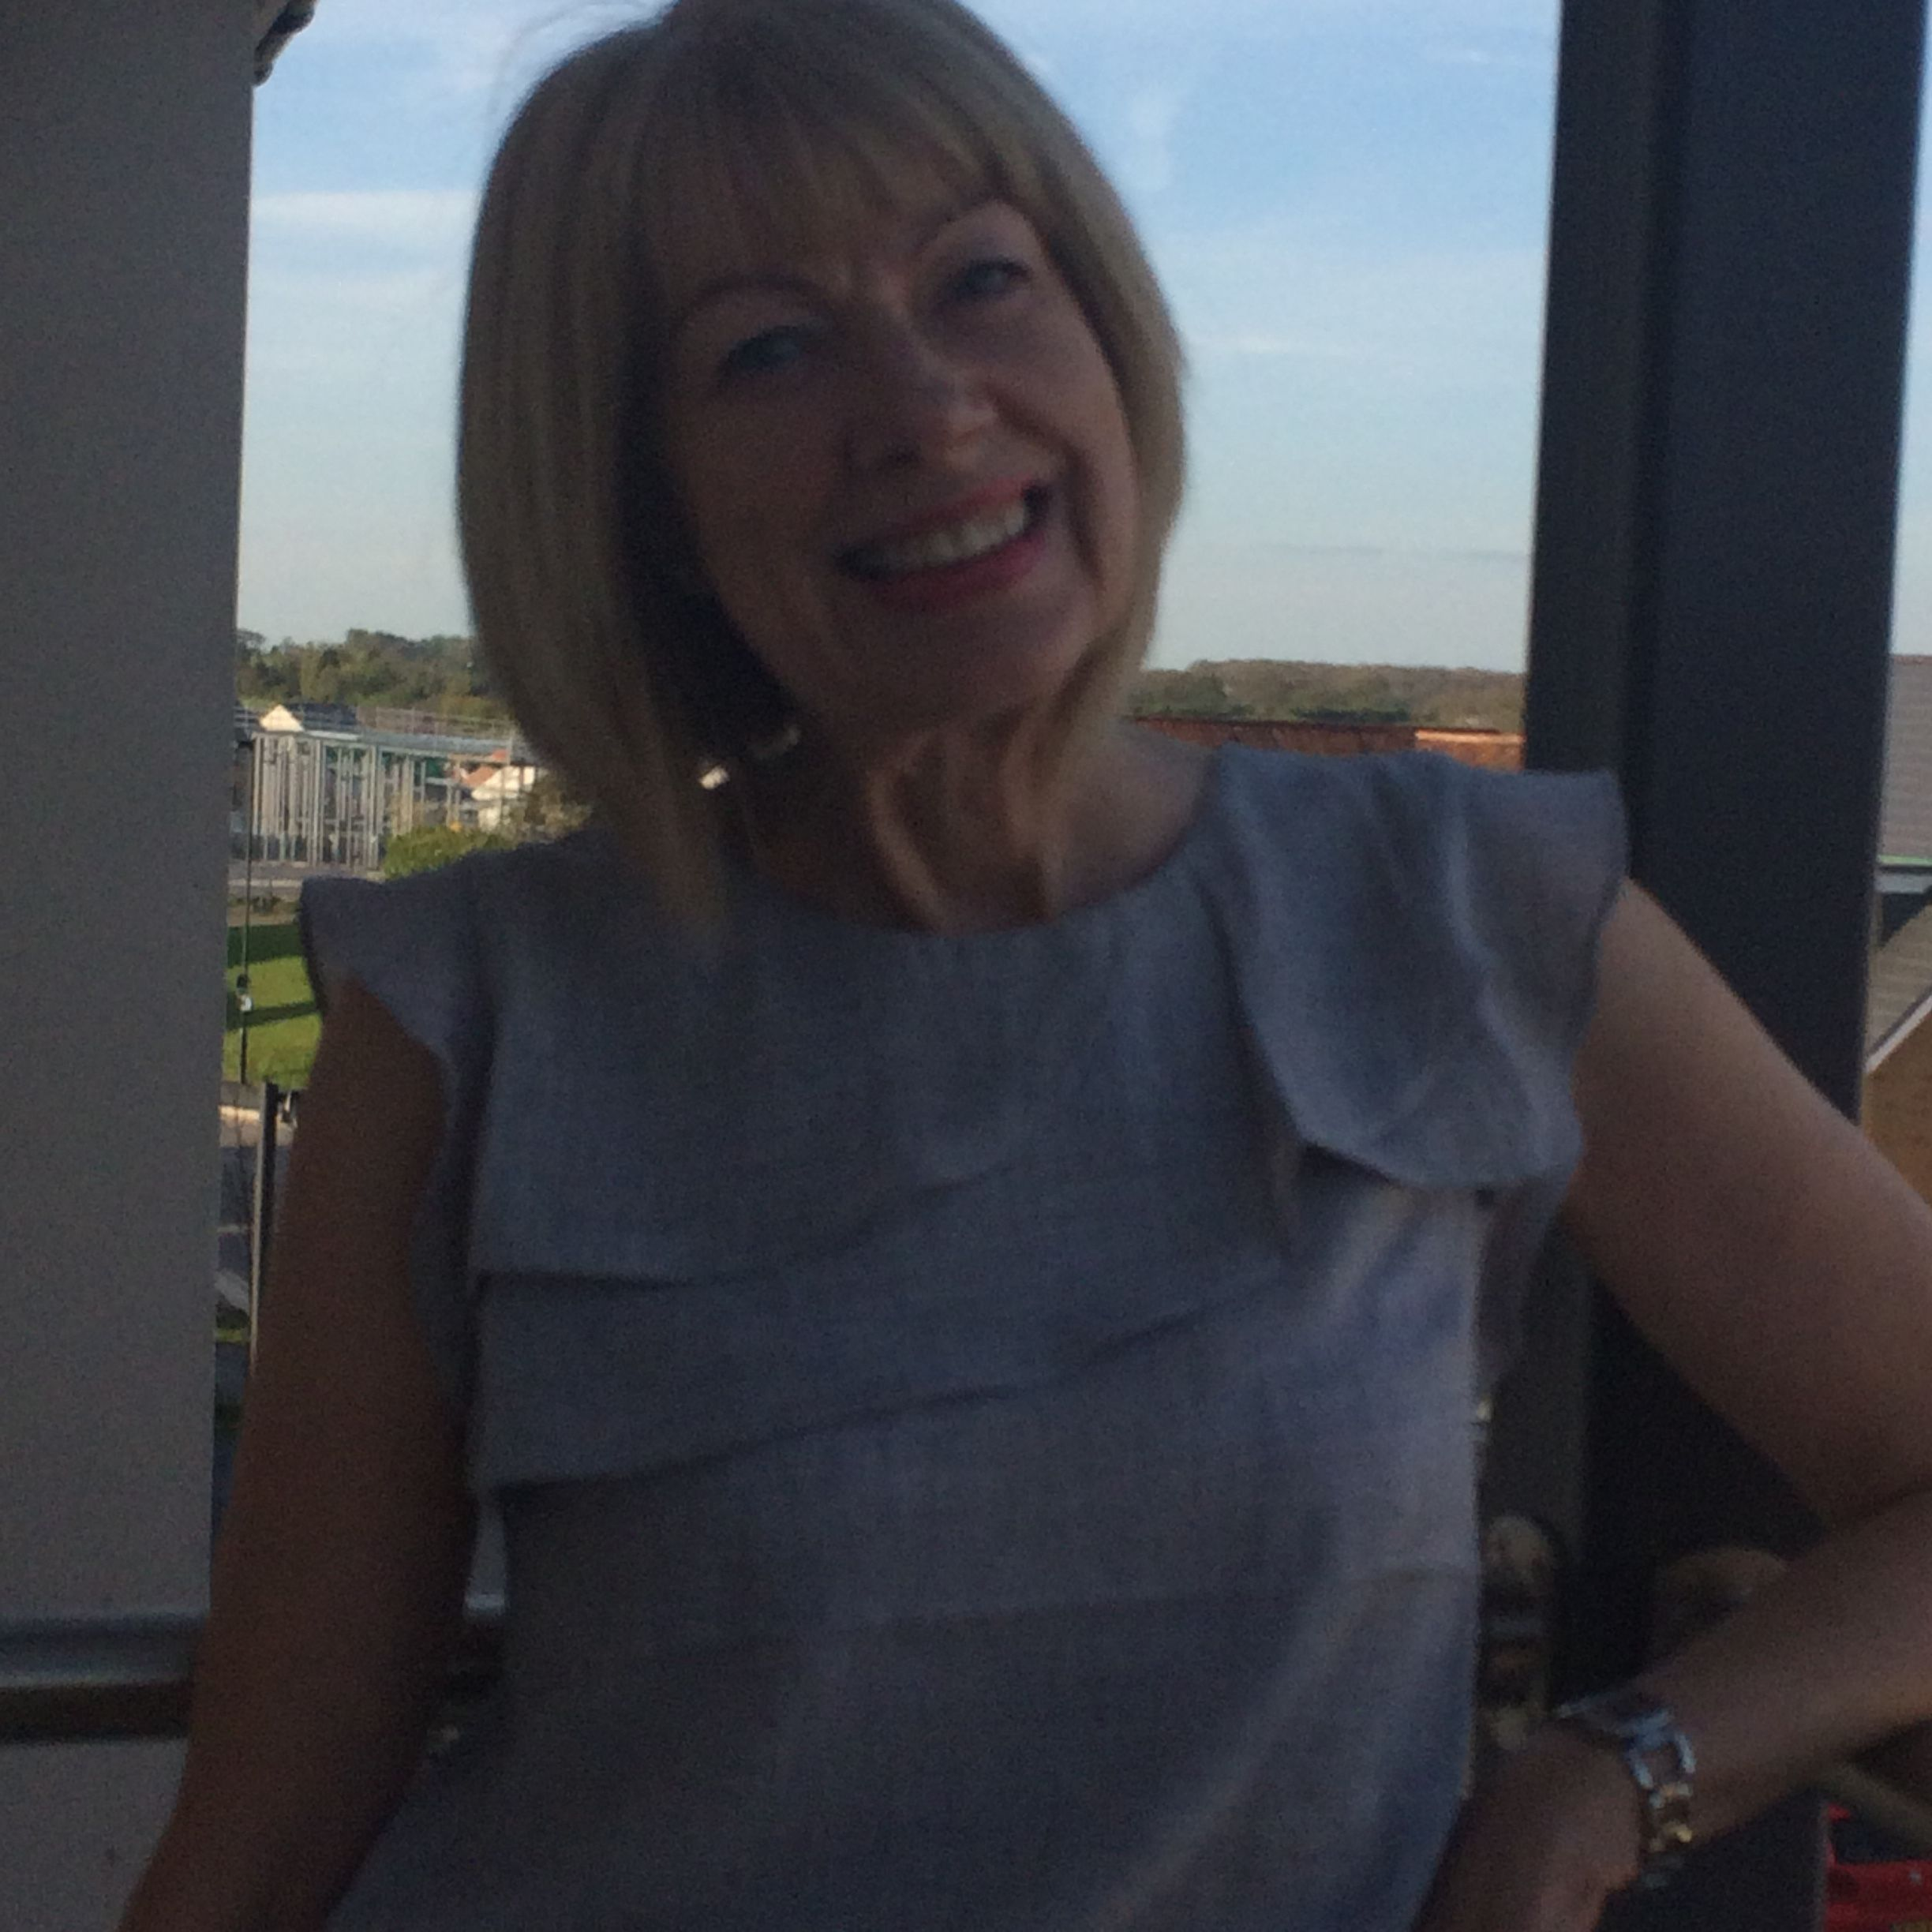 bristol mature singles Meet thousands of local bristol singles, as the worlds largest dating site we make dating in bristol easy plentyoffish is 100% free, unlike paid dating sites.